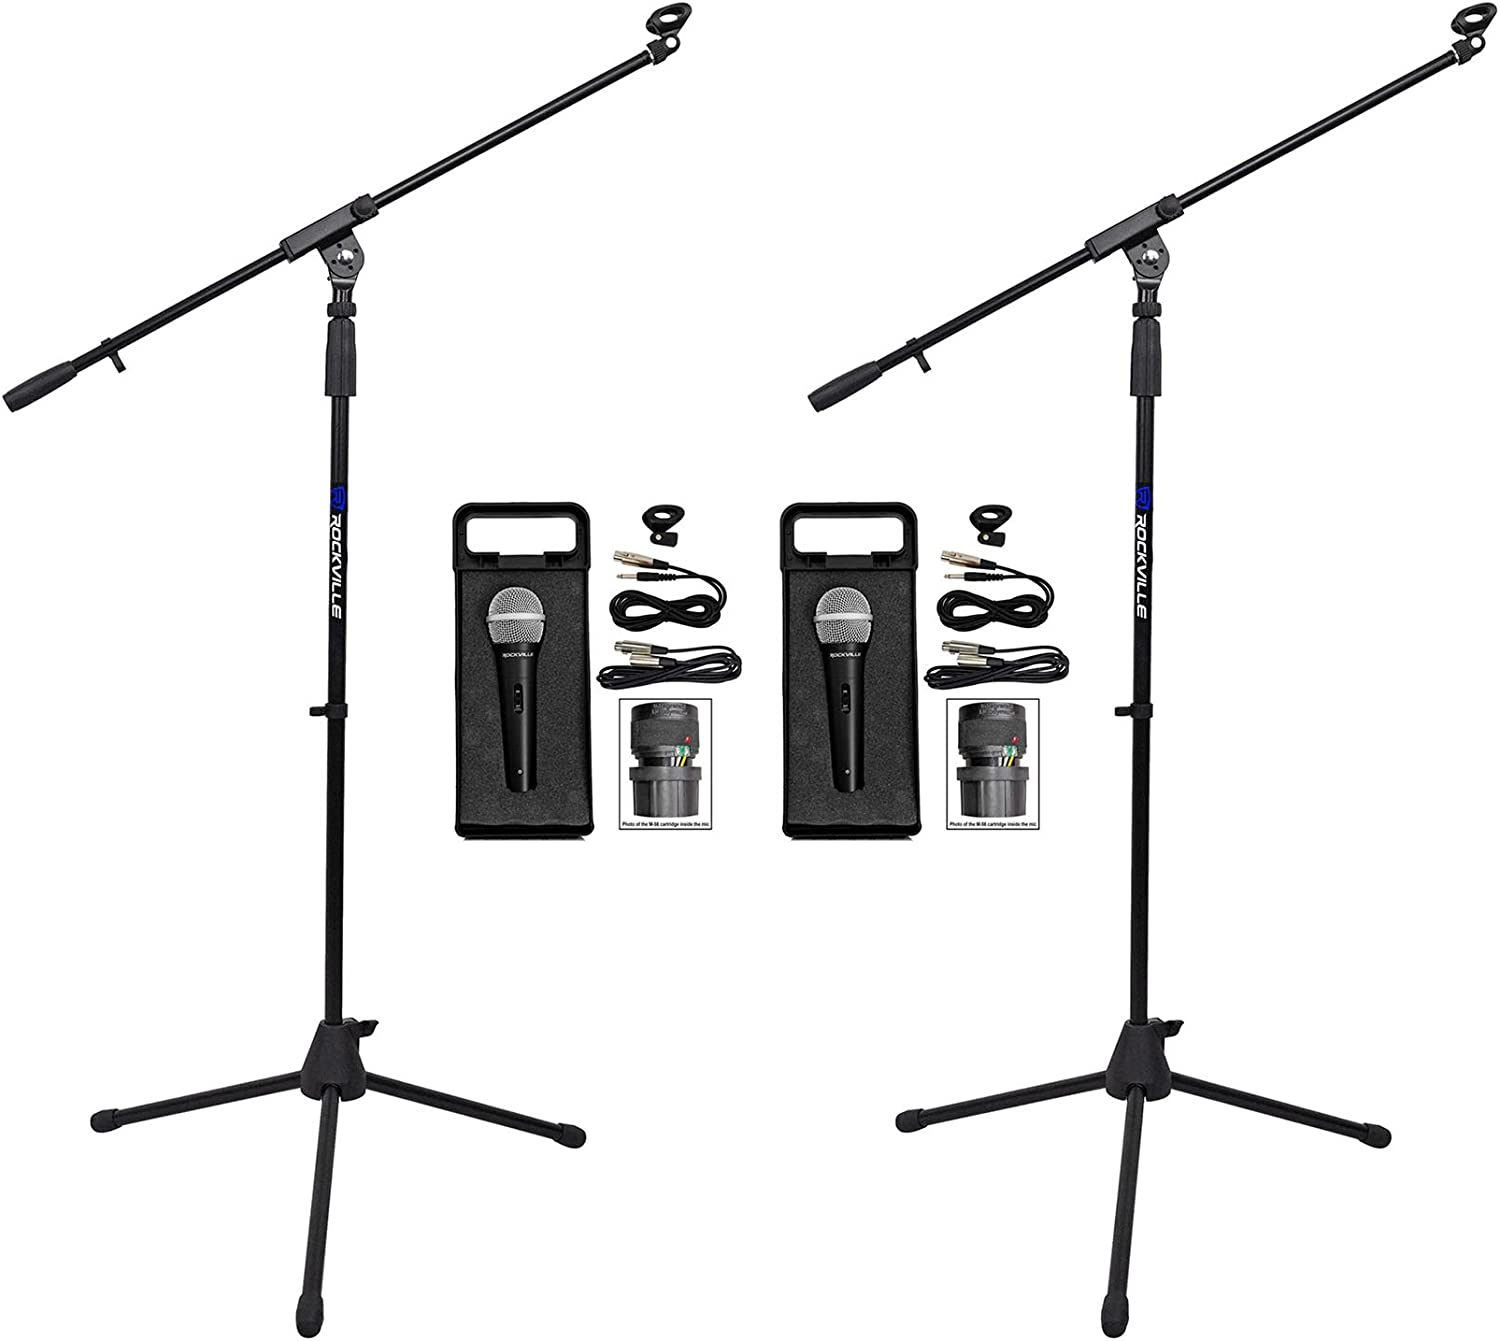 2) Rockville RMC-XLR High-End Metal Handheld Wired Microphones +Tripod Stand 71gbpGa5uDL